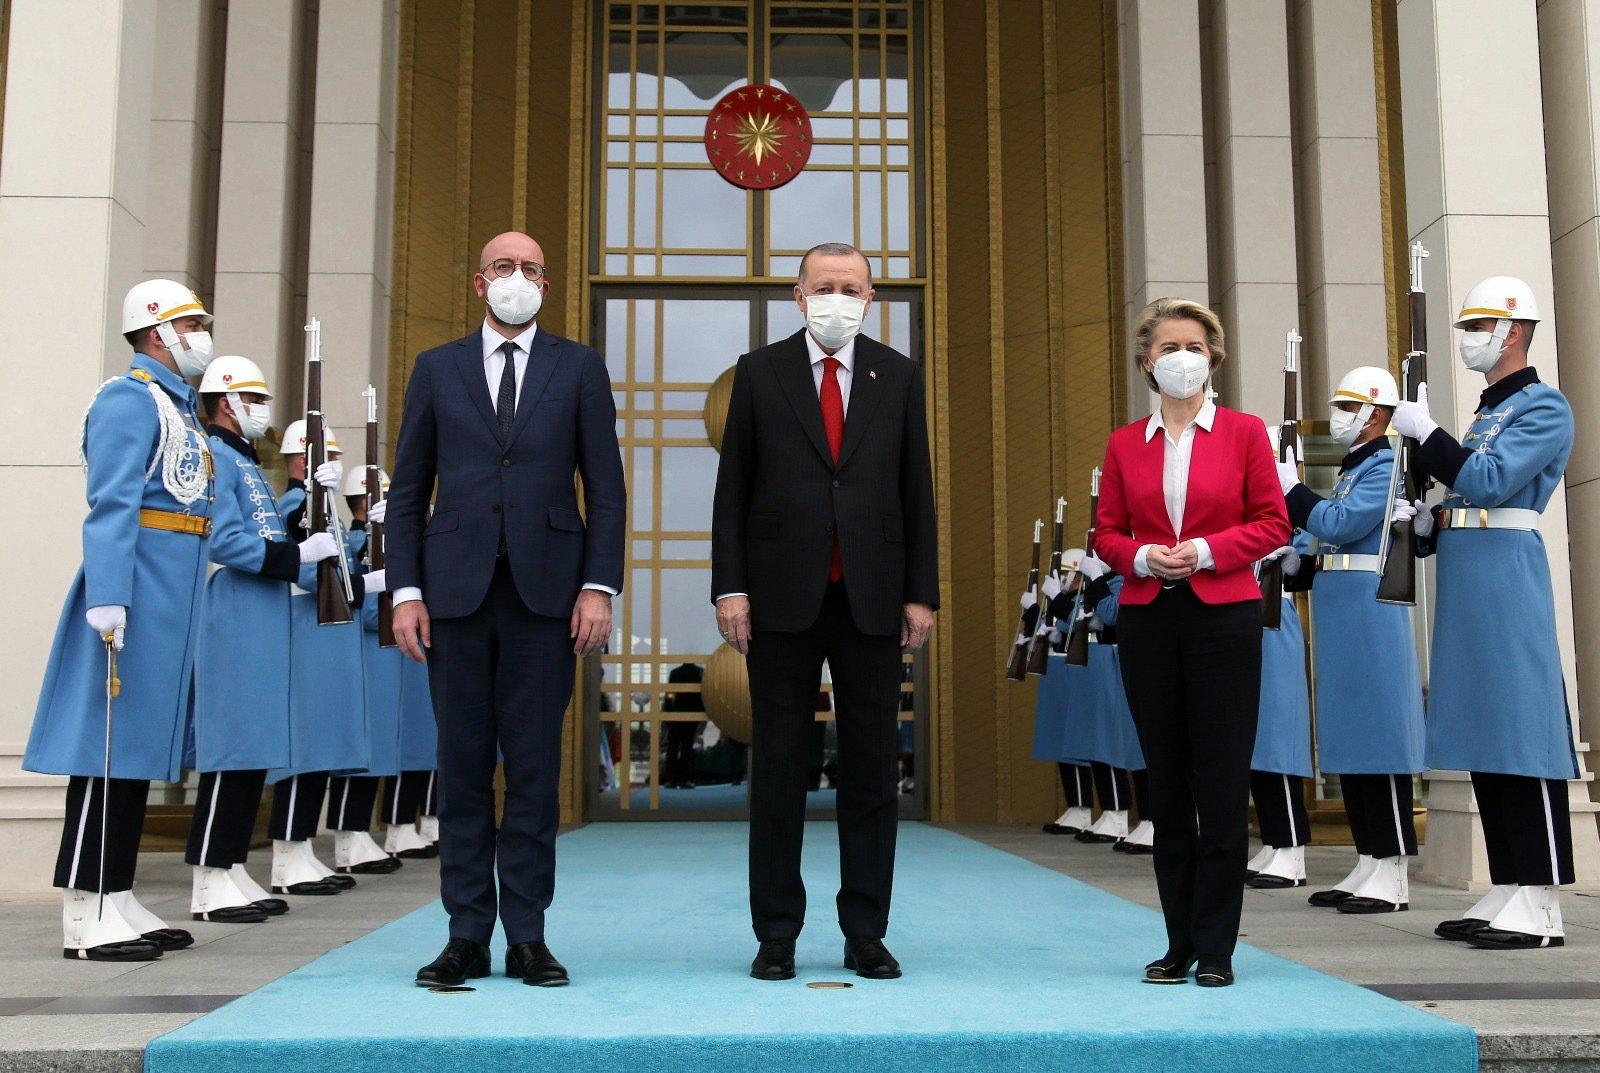 European Council head Charles Michel (L), President Recep Tayyip Erdoğan (C) and the head of the European Union Commission, Ursula von der Leyen, as the president receives the EU diplomats at the Presidential Complex in Ankara, Turkey, April 6, 2021.